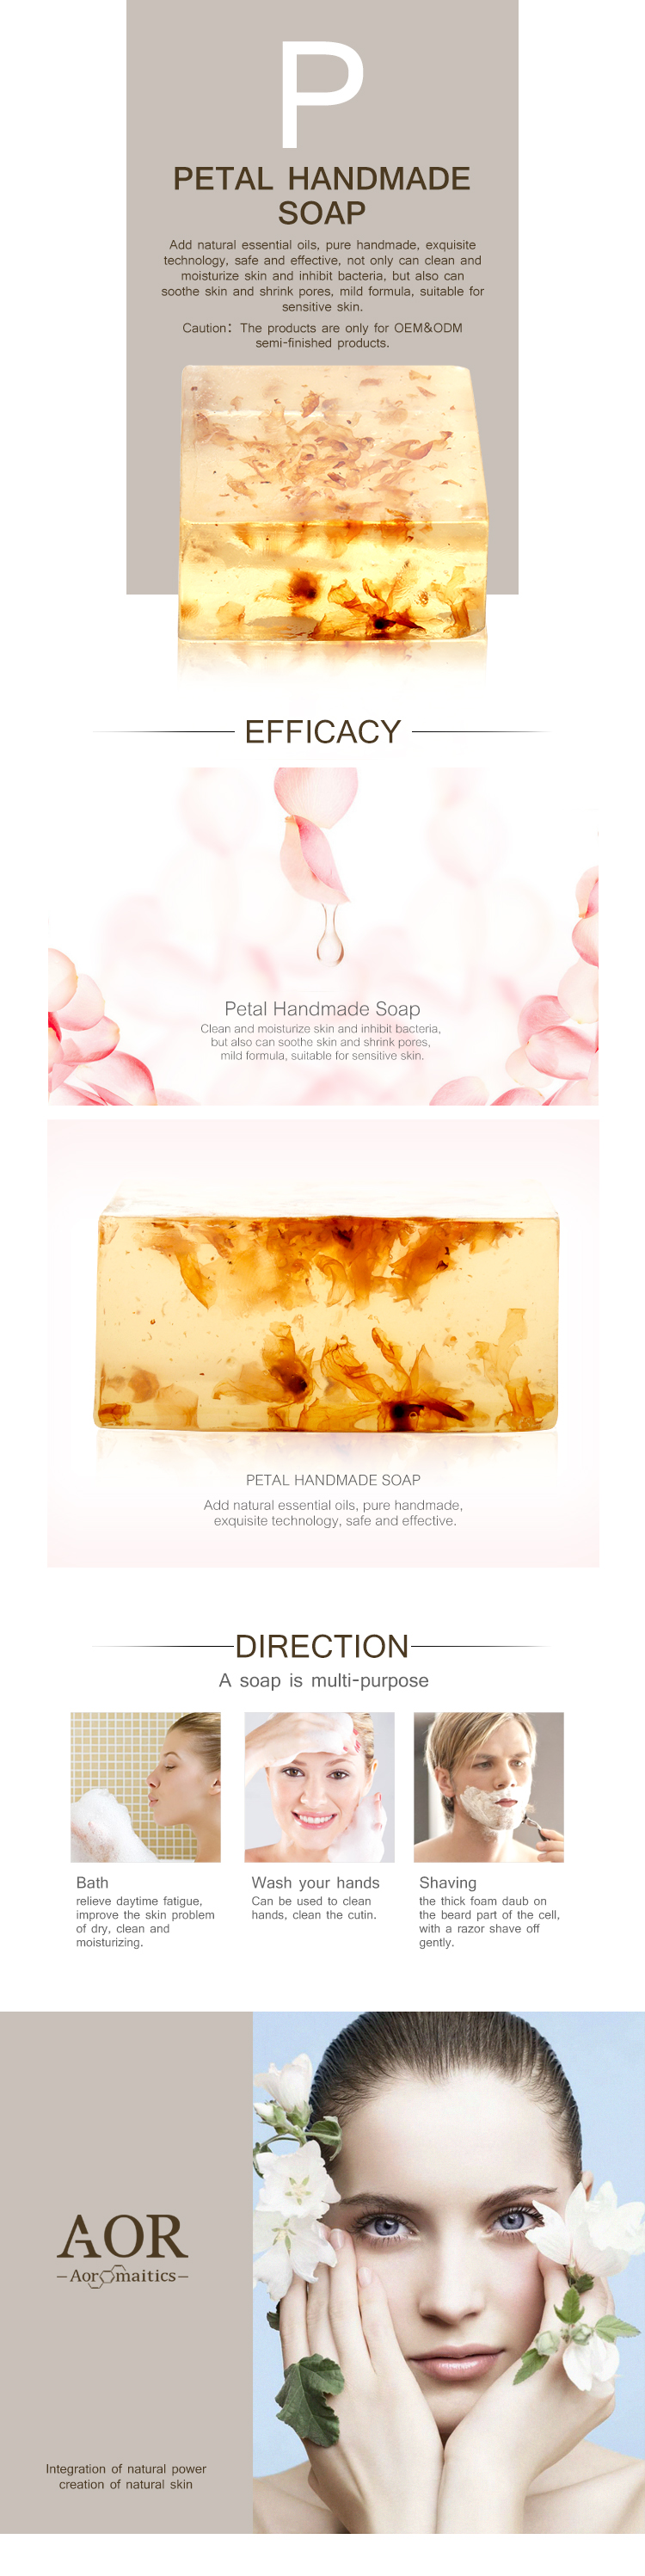 Petal Handmade Soap for Nourishing Antibacterial Soothing Refining pores with OEM/ODM